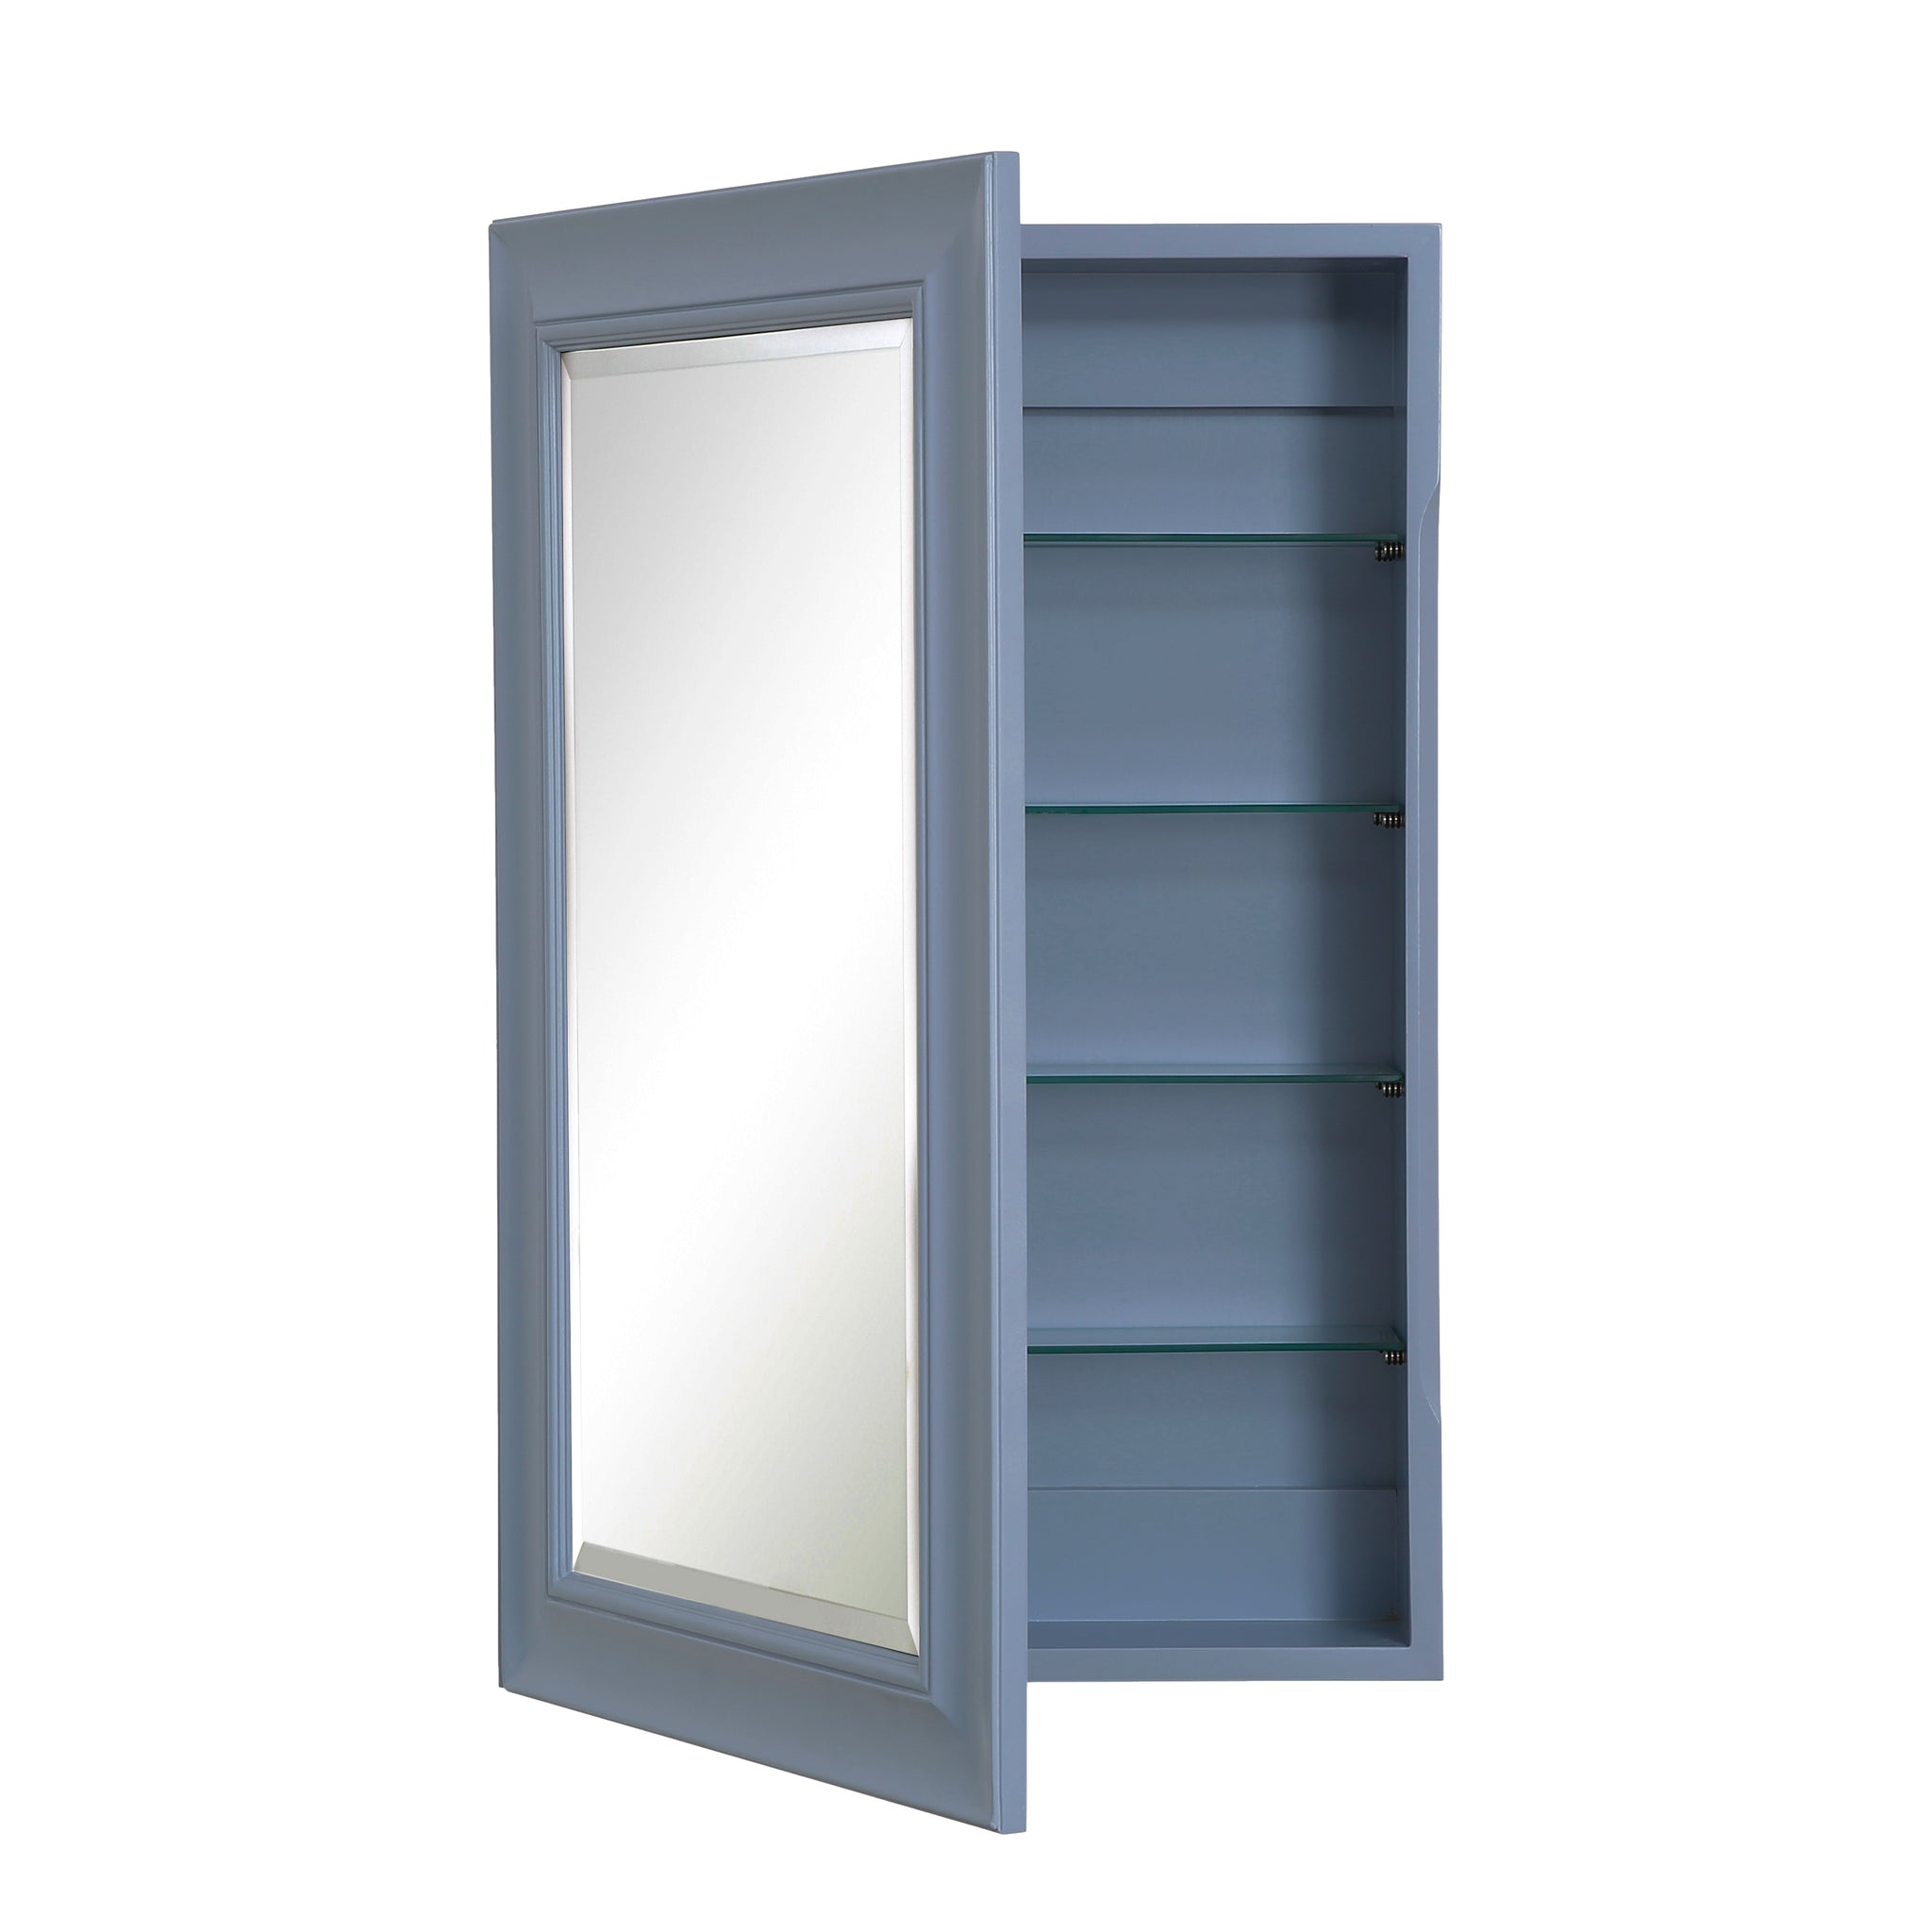 Napa Wall-Mounted Medicine Cabinet (Powder Blue